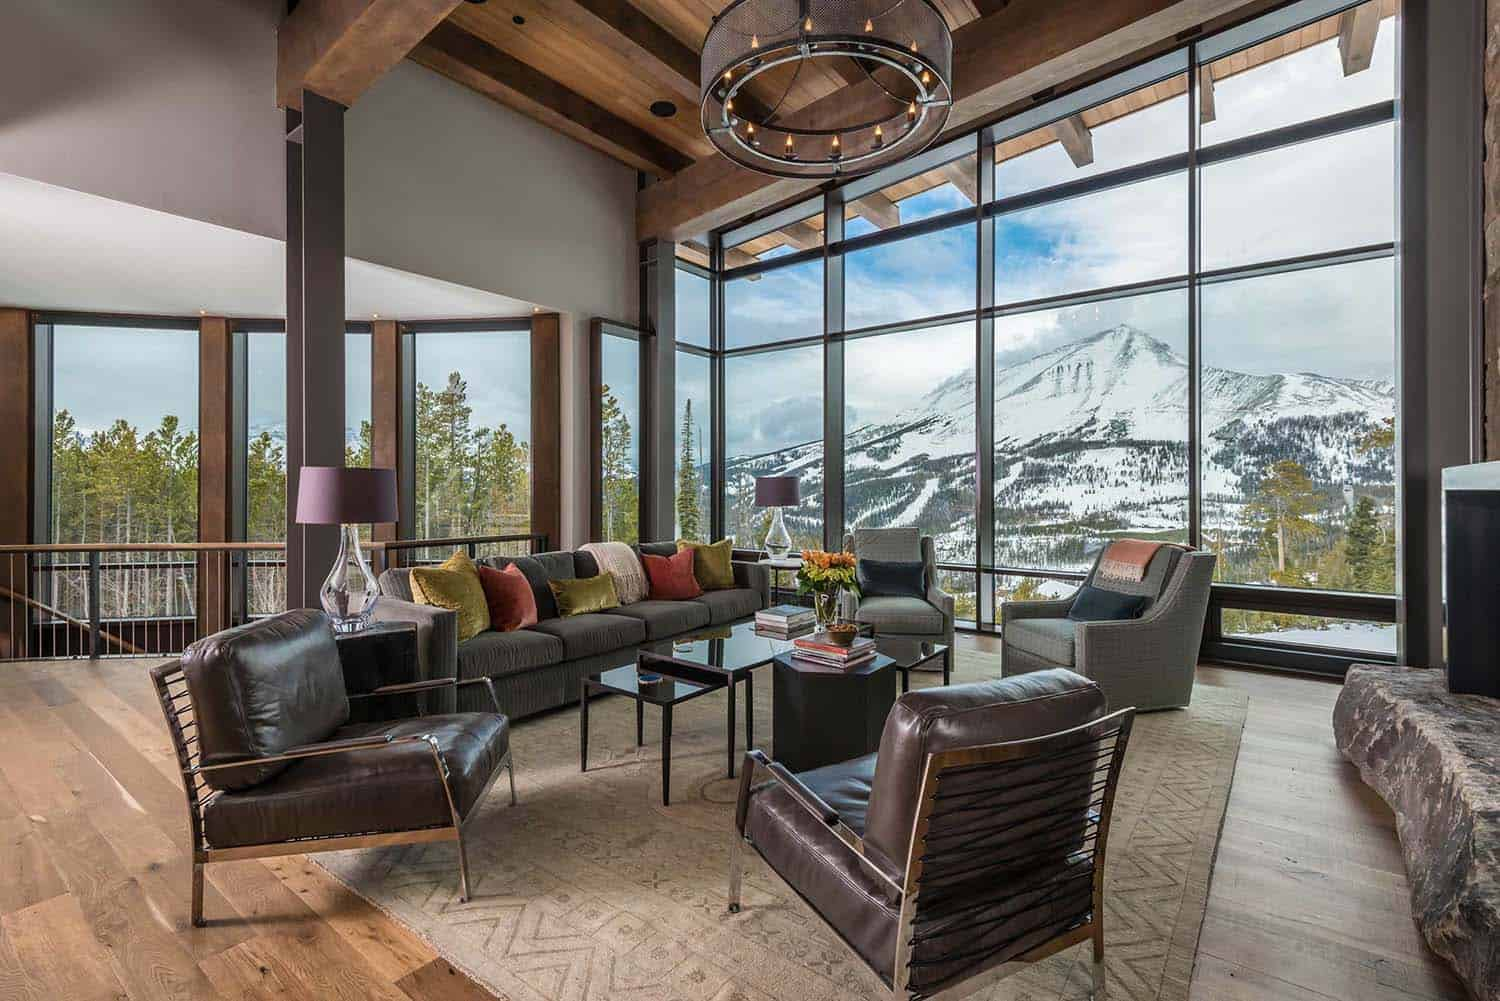 Contemporary Mountain Residence-Reid Smith Architects-02-1 Kindesign